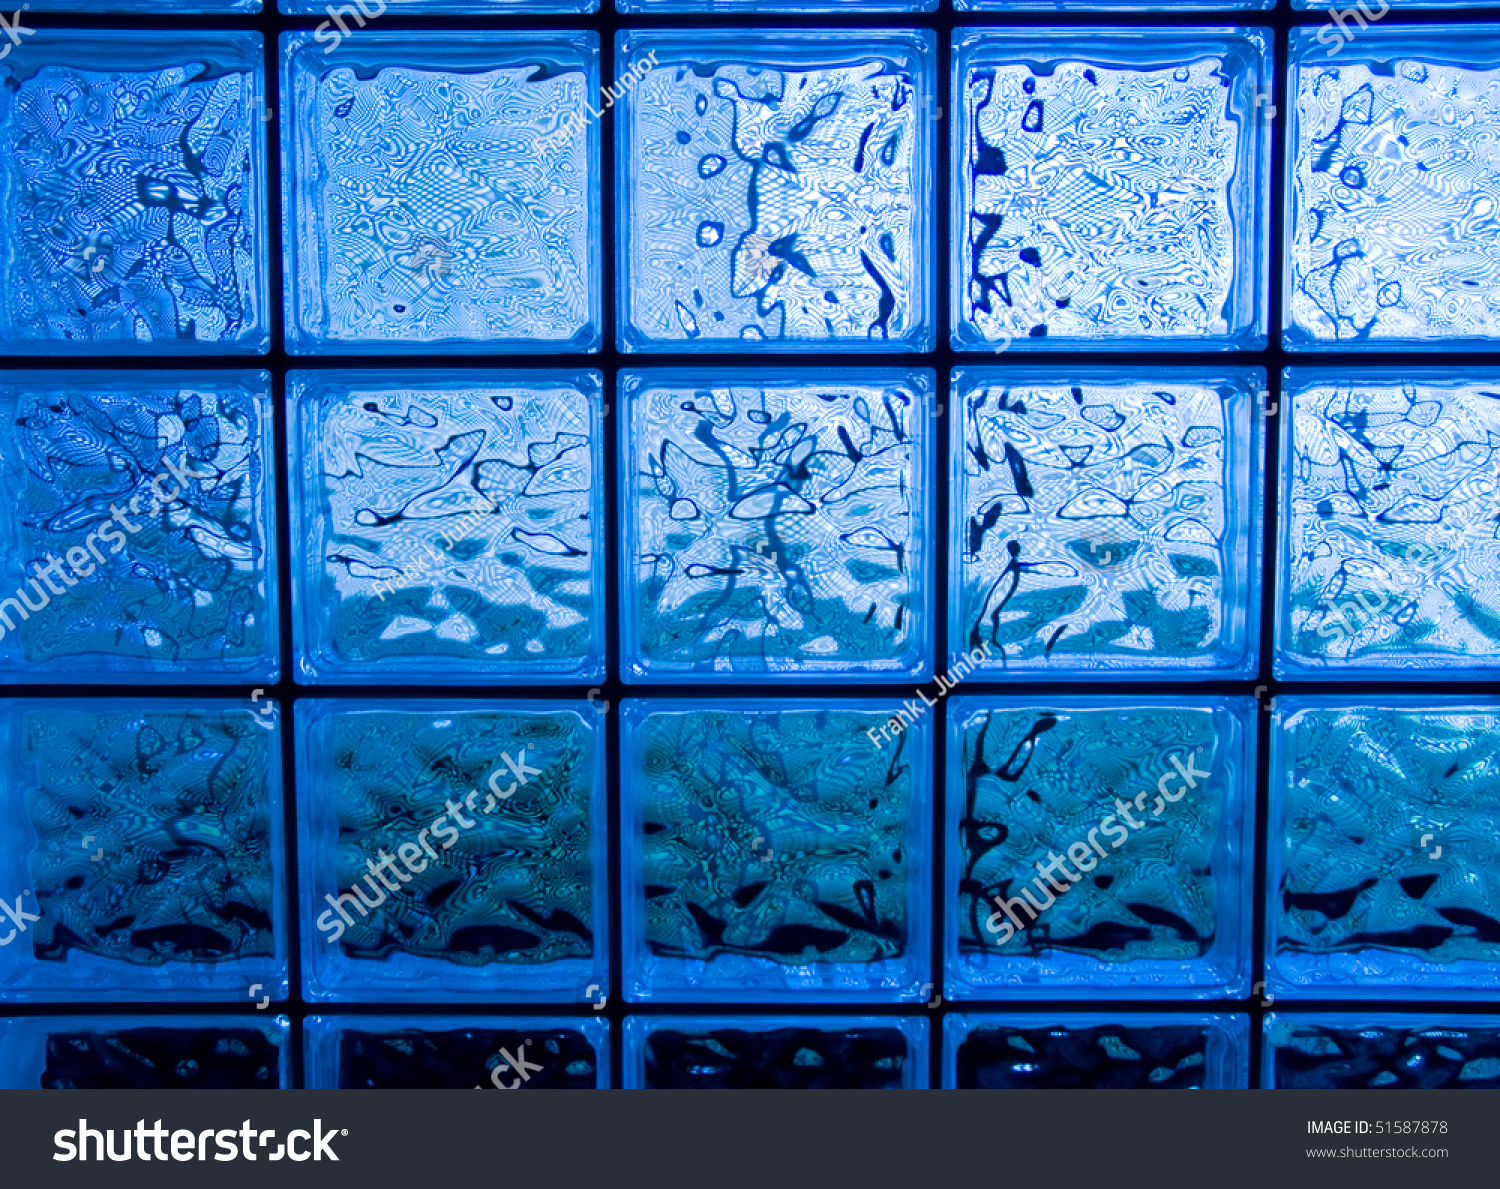 Abstract of a blue tone glass block window frame stock for Glass block window frame